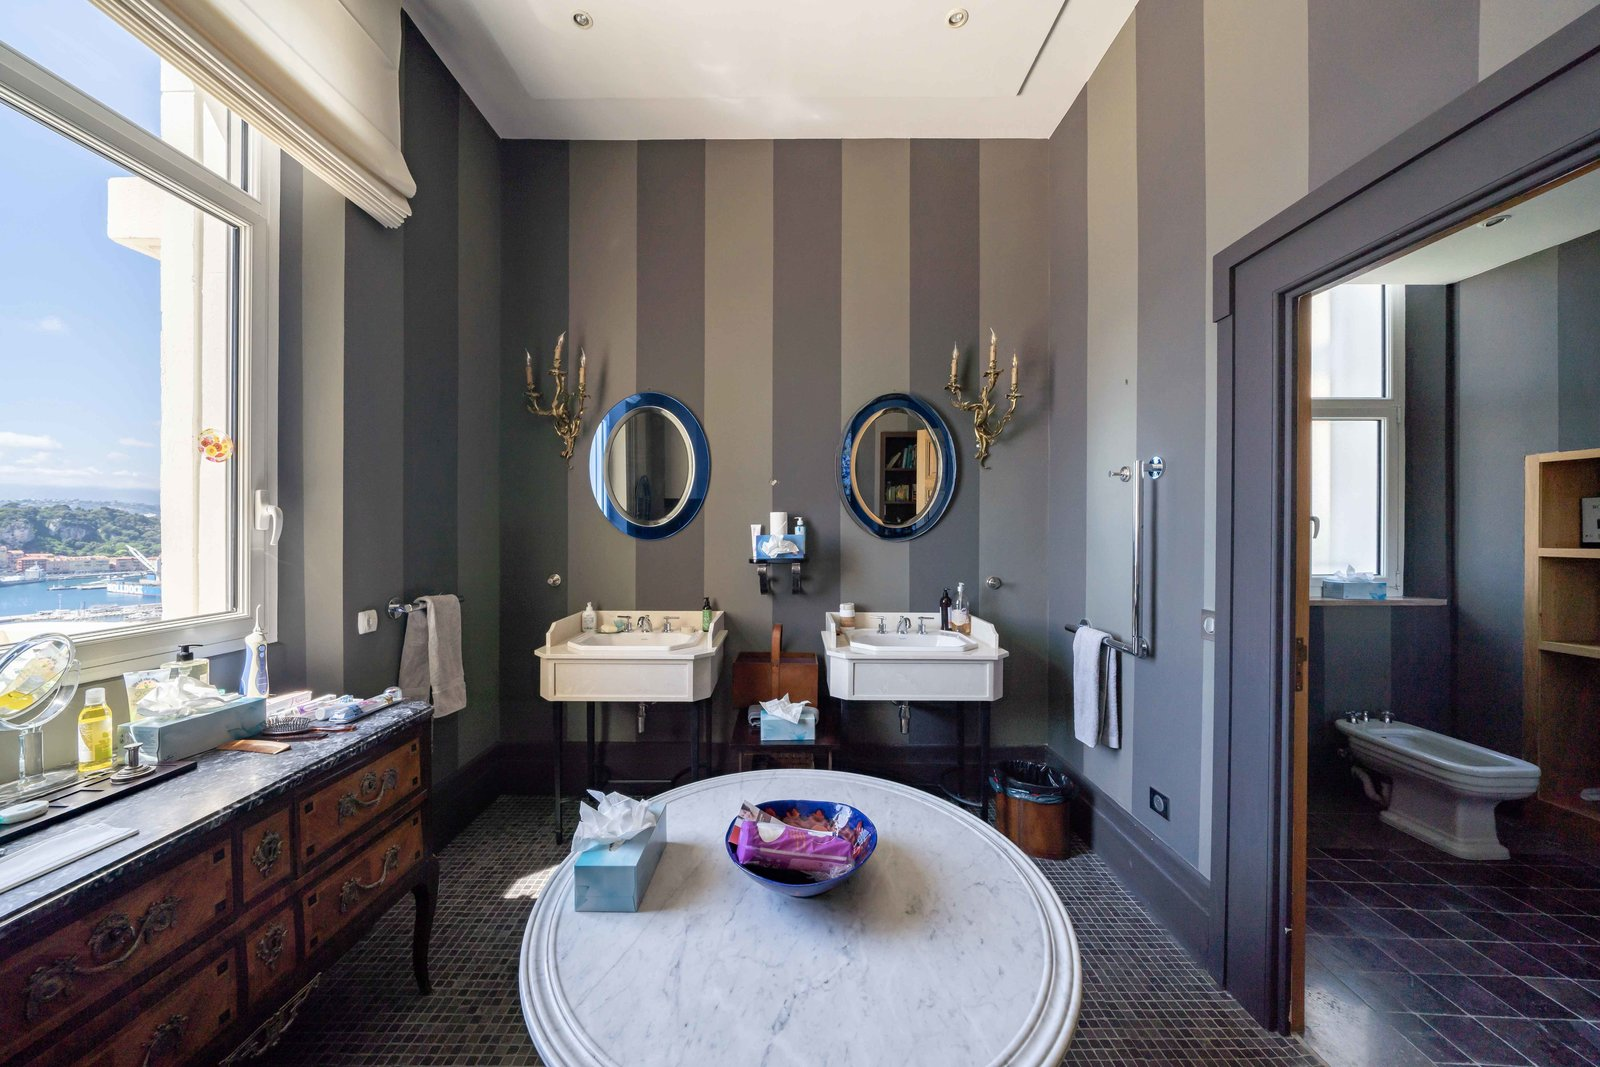 Bath Room, Ceiling Lighting, Wall Lighting, and Pedestal Sink A look into one of the five bathrooms. Large picture windows frame postcard-worthy views.  Photo 6 of 11 in Scottish Actor Sean Connery's Former Seaside Villa Looks Like the Perfect Place to Quarantine